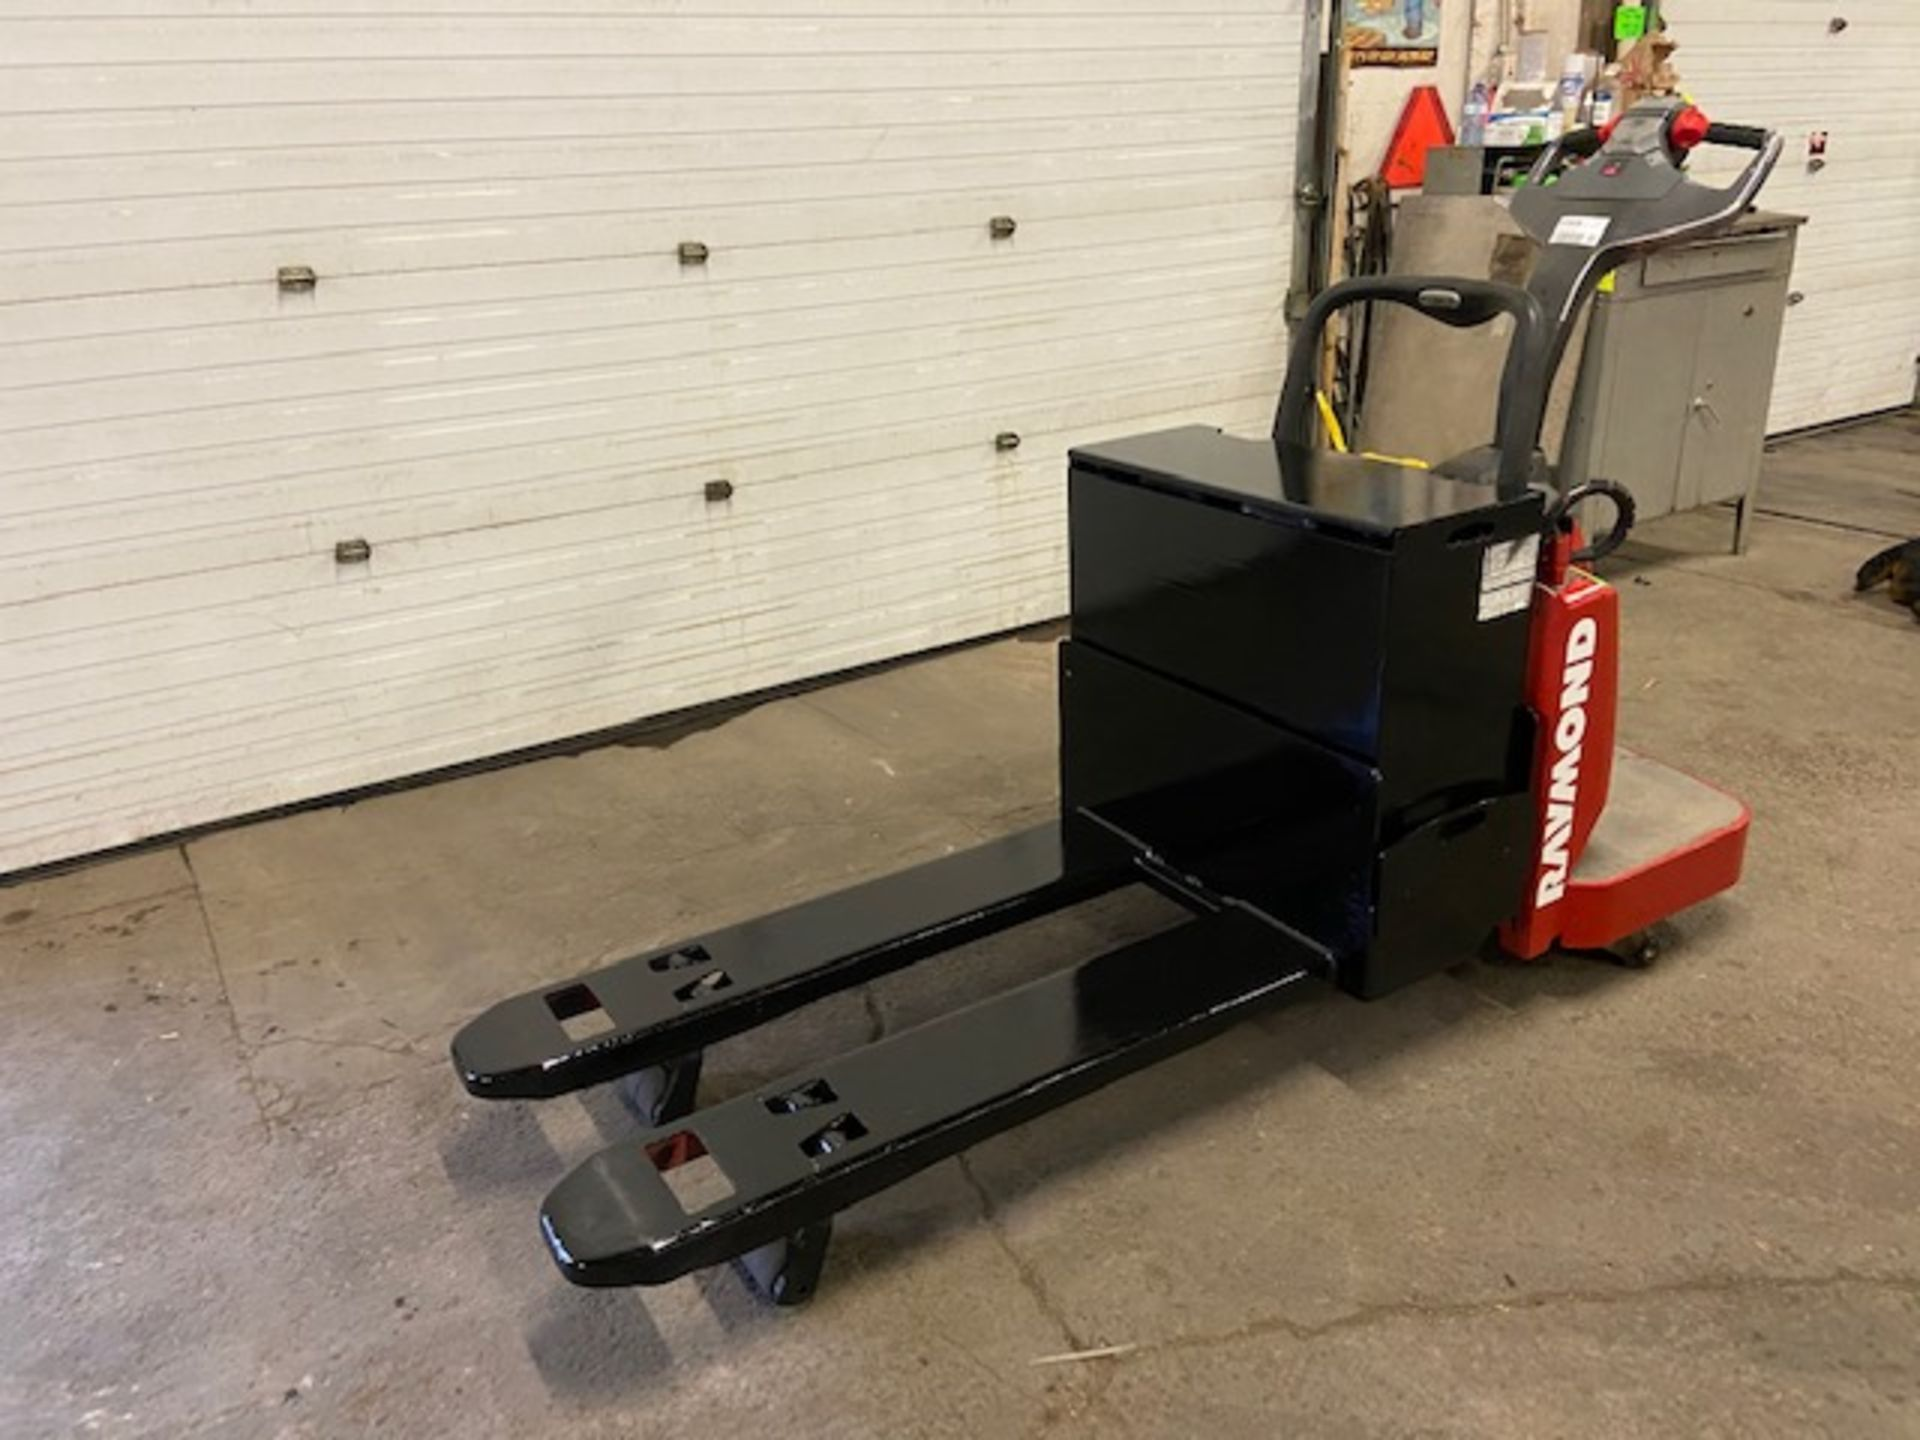 Raymond Electric Ride on Powered Pallet Cart Lift 6000lbs capacity 4' Long with LOW HOURS - Image 2 of 3